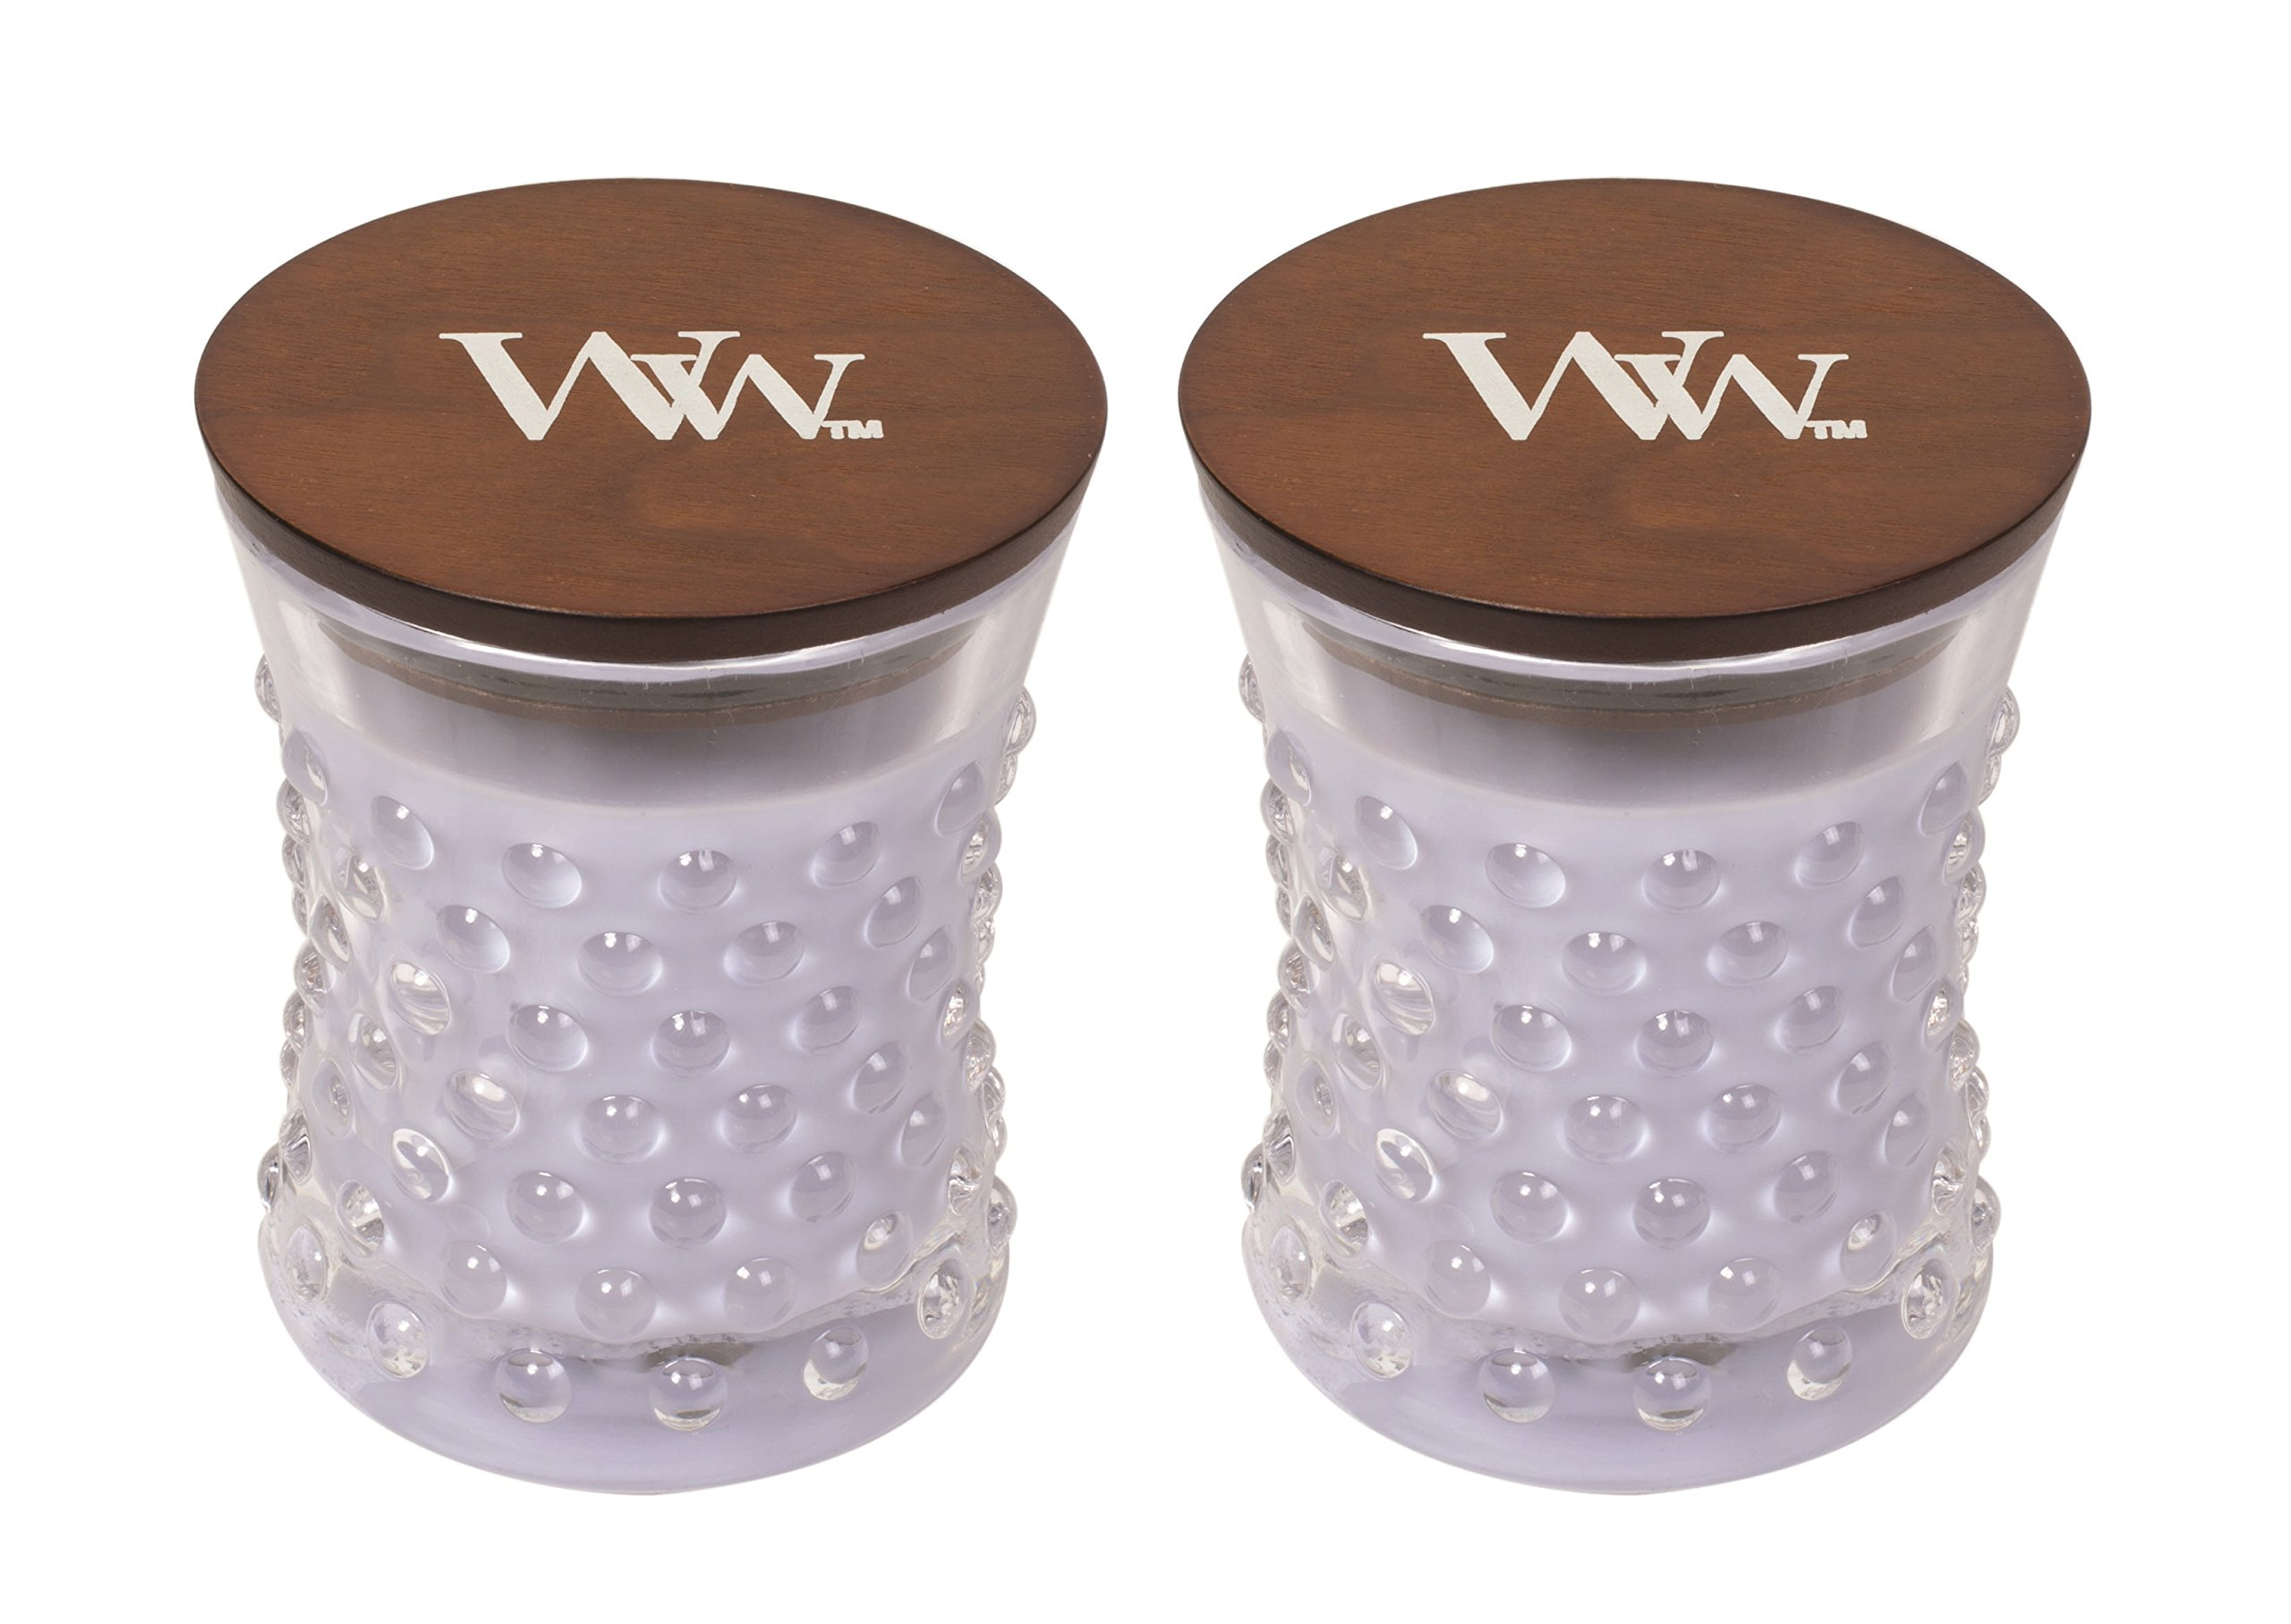 WoodWick Vintage Hobnail Candle Set - Lavender Spa by WoodWick (Image #1)